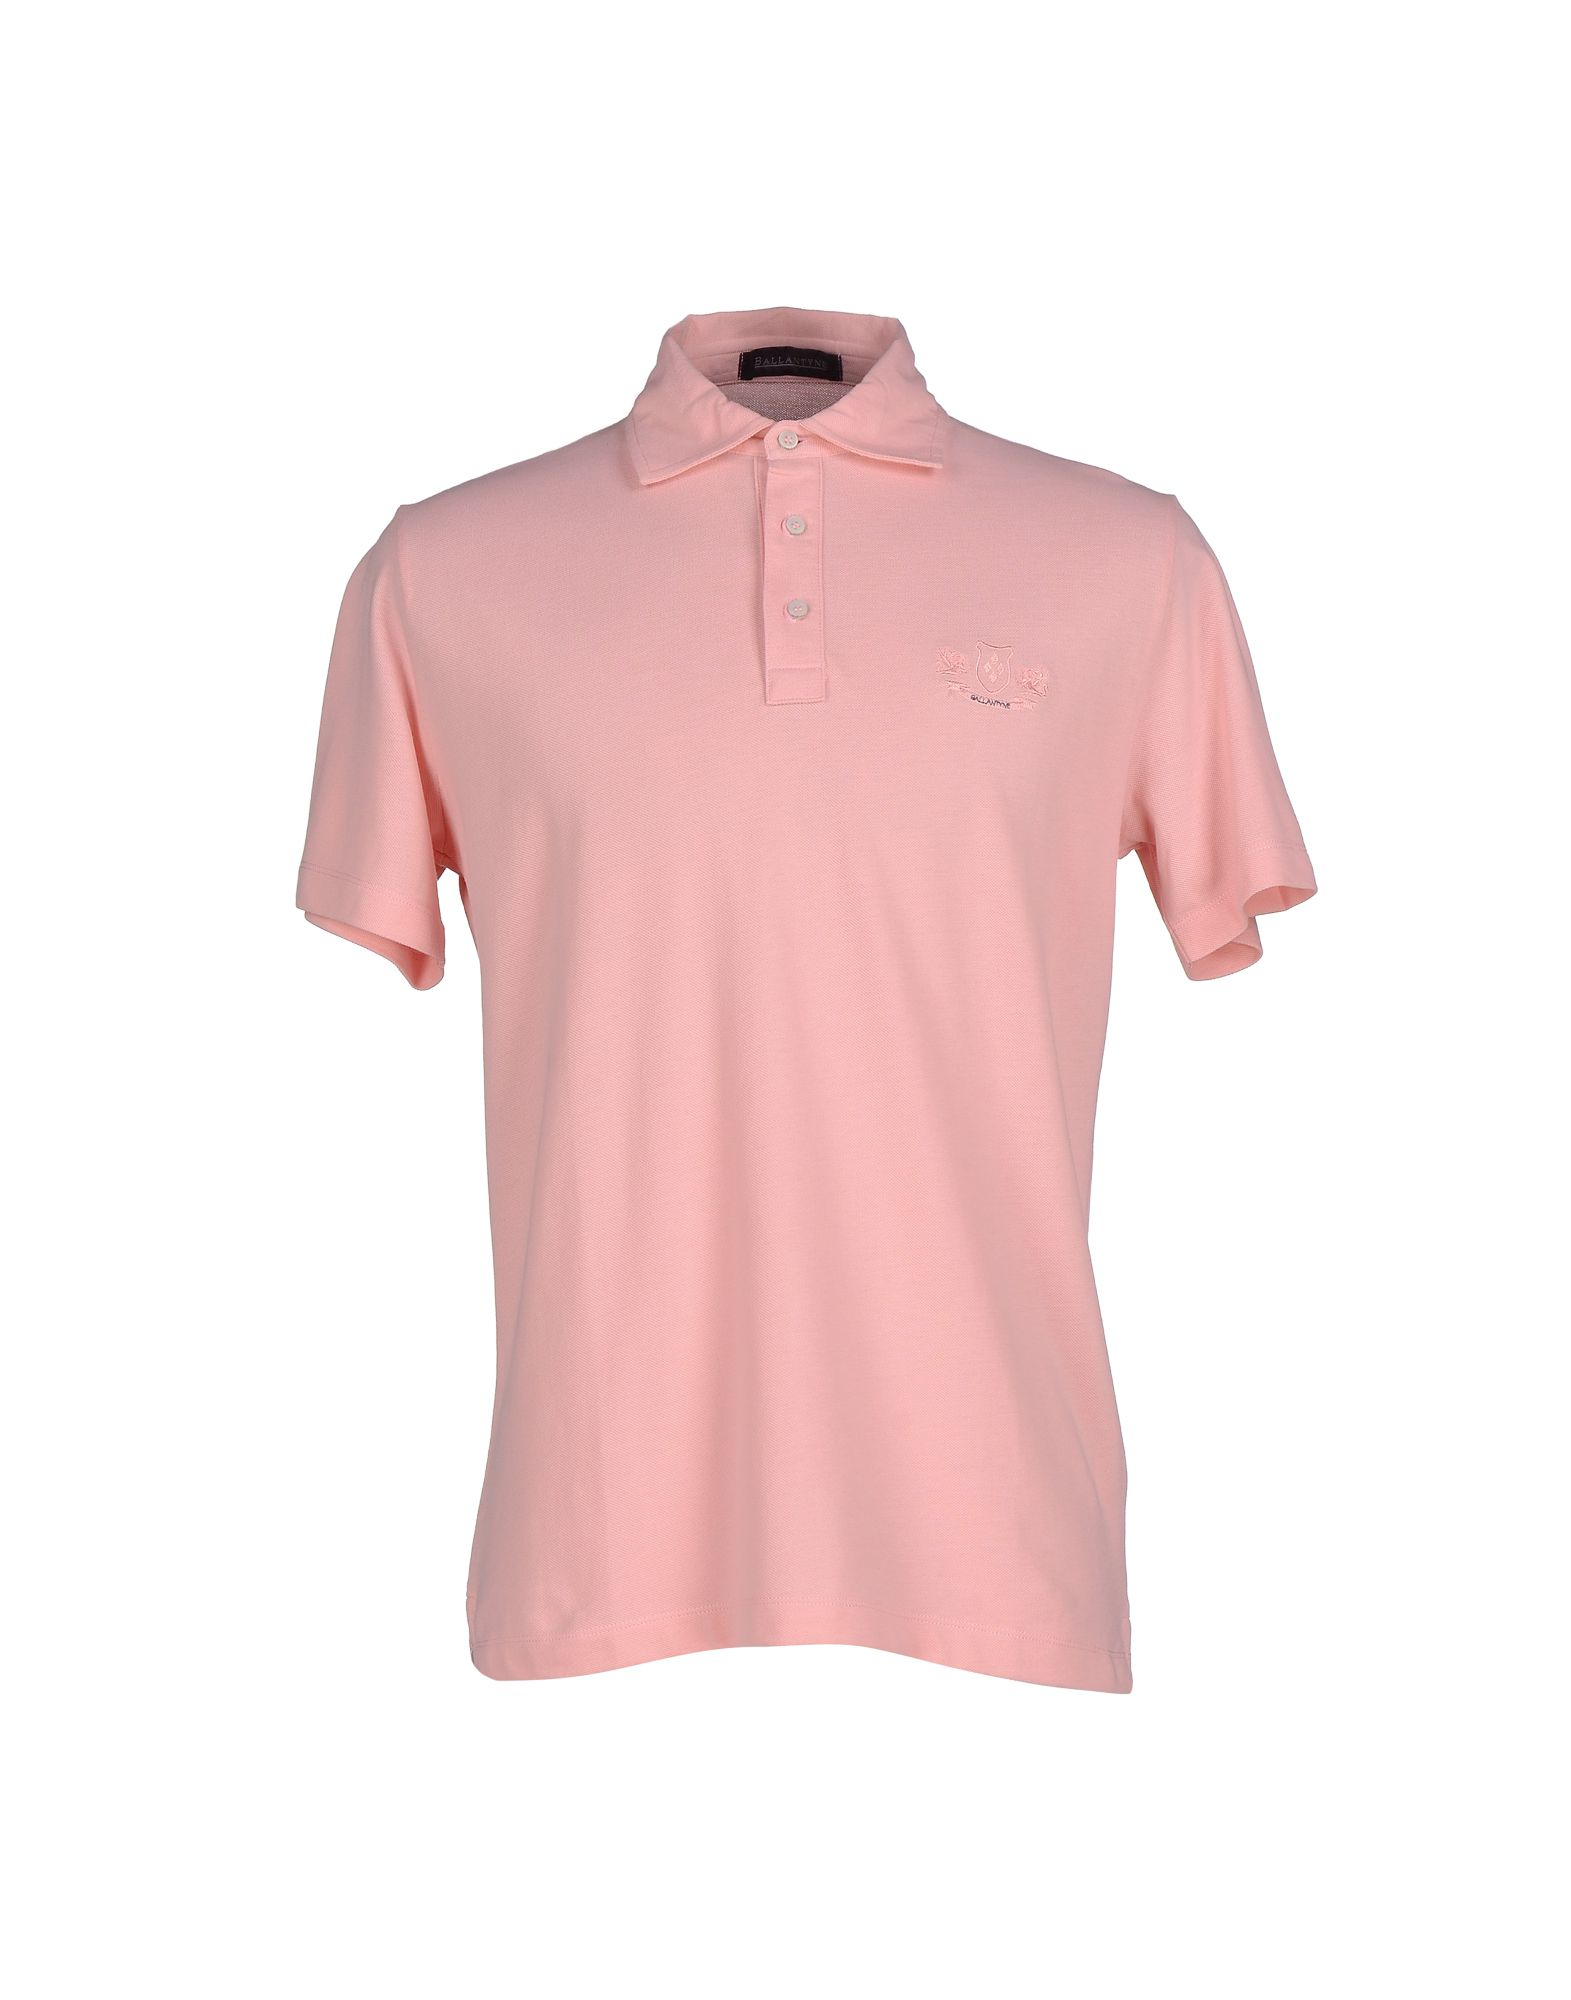 Ballantyne Polo Shirt In Pink For Men Lyst